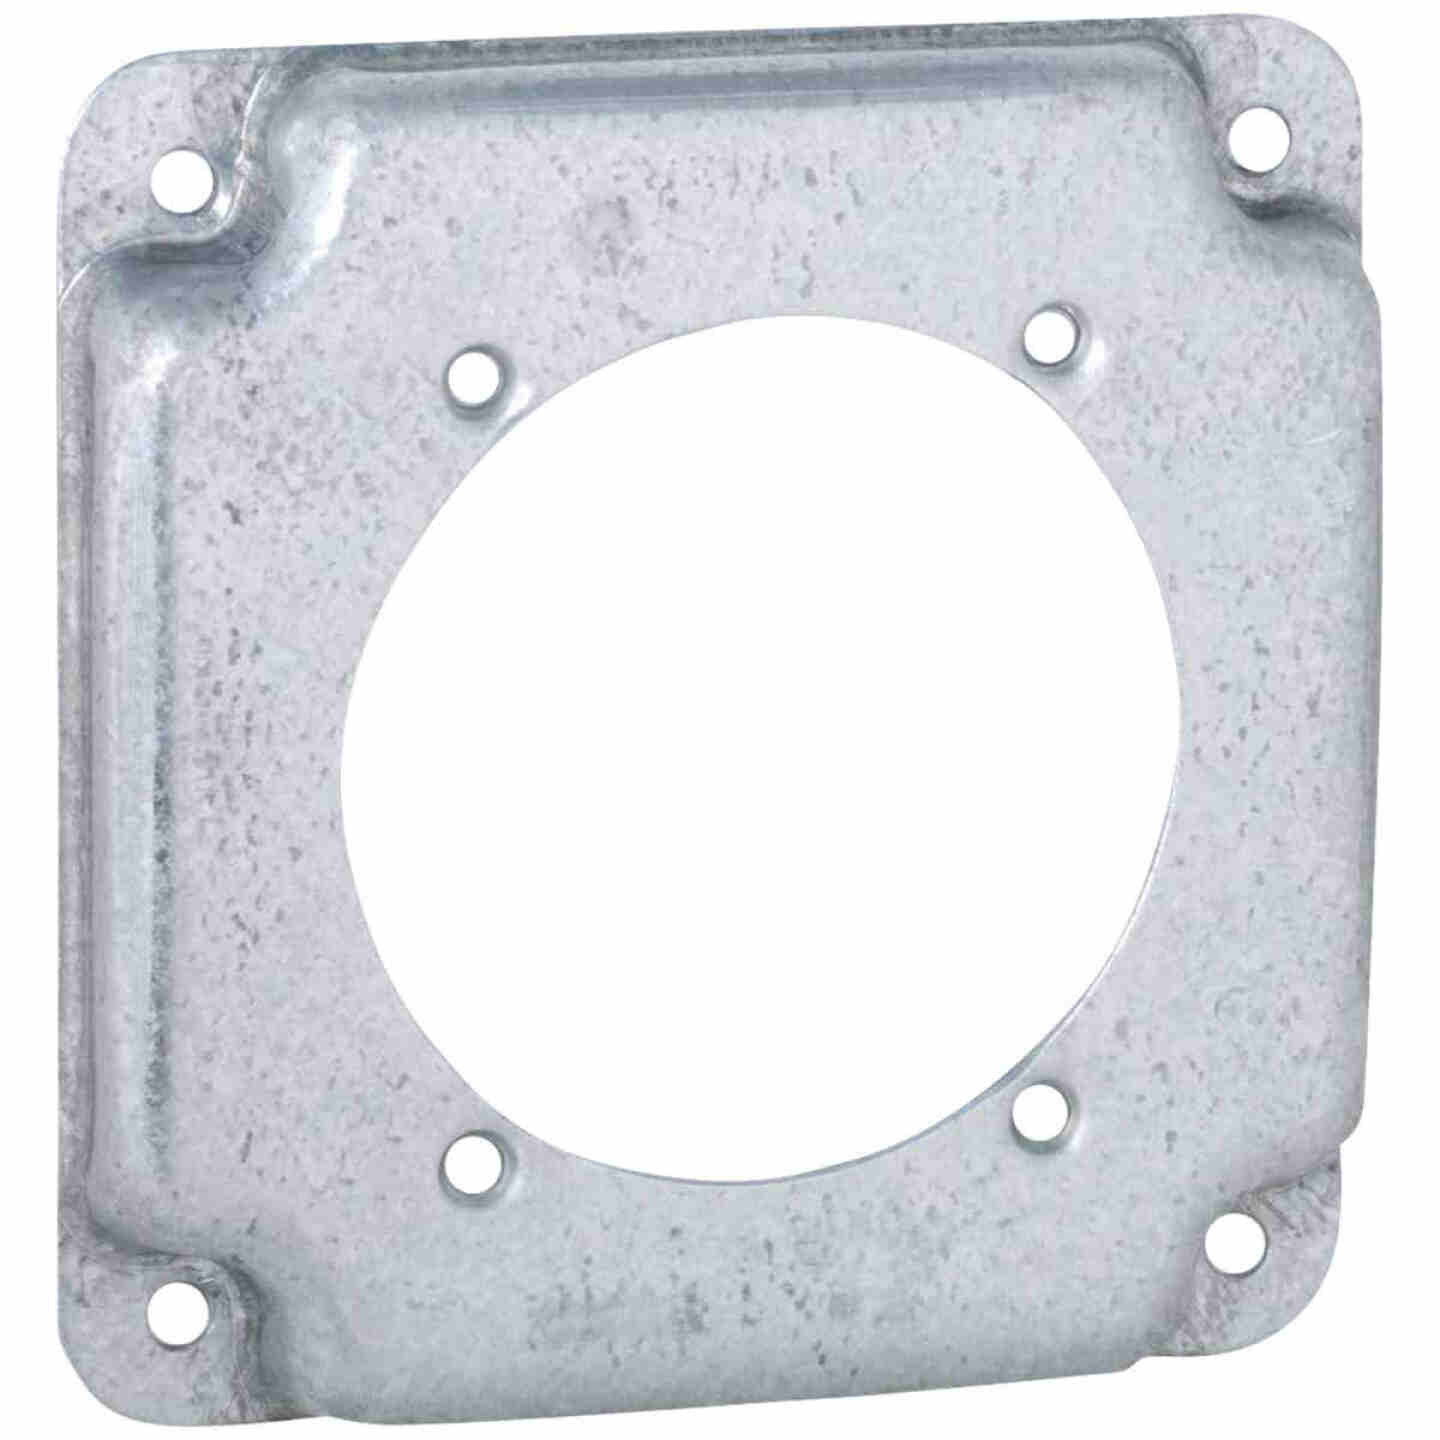 Raco 2.465 In. Dia. Receptacle 4 In. x 4 In. Square Device Cover Image 1